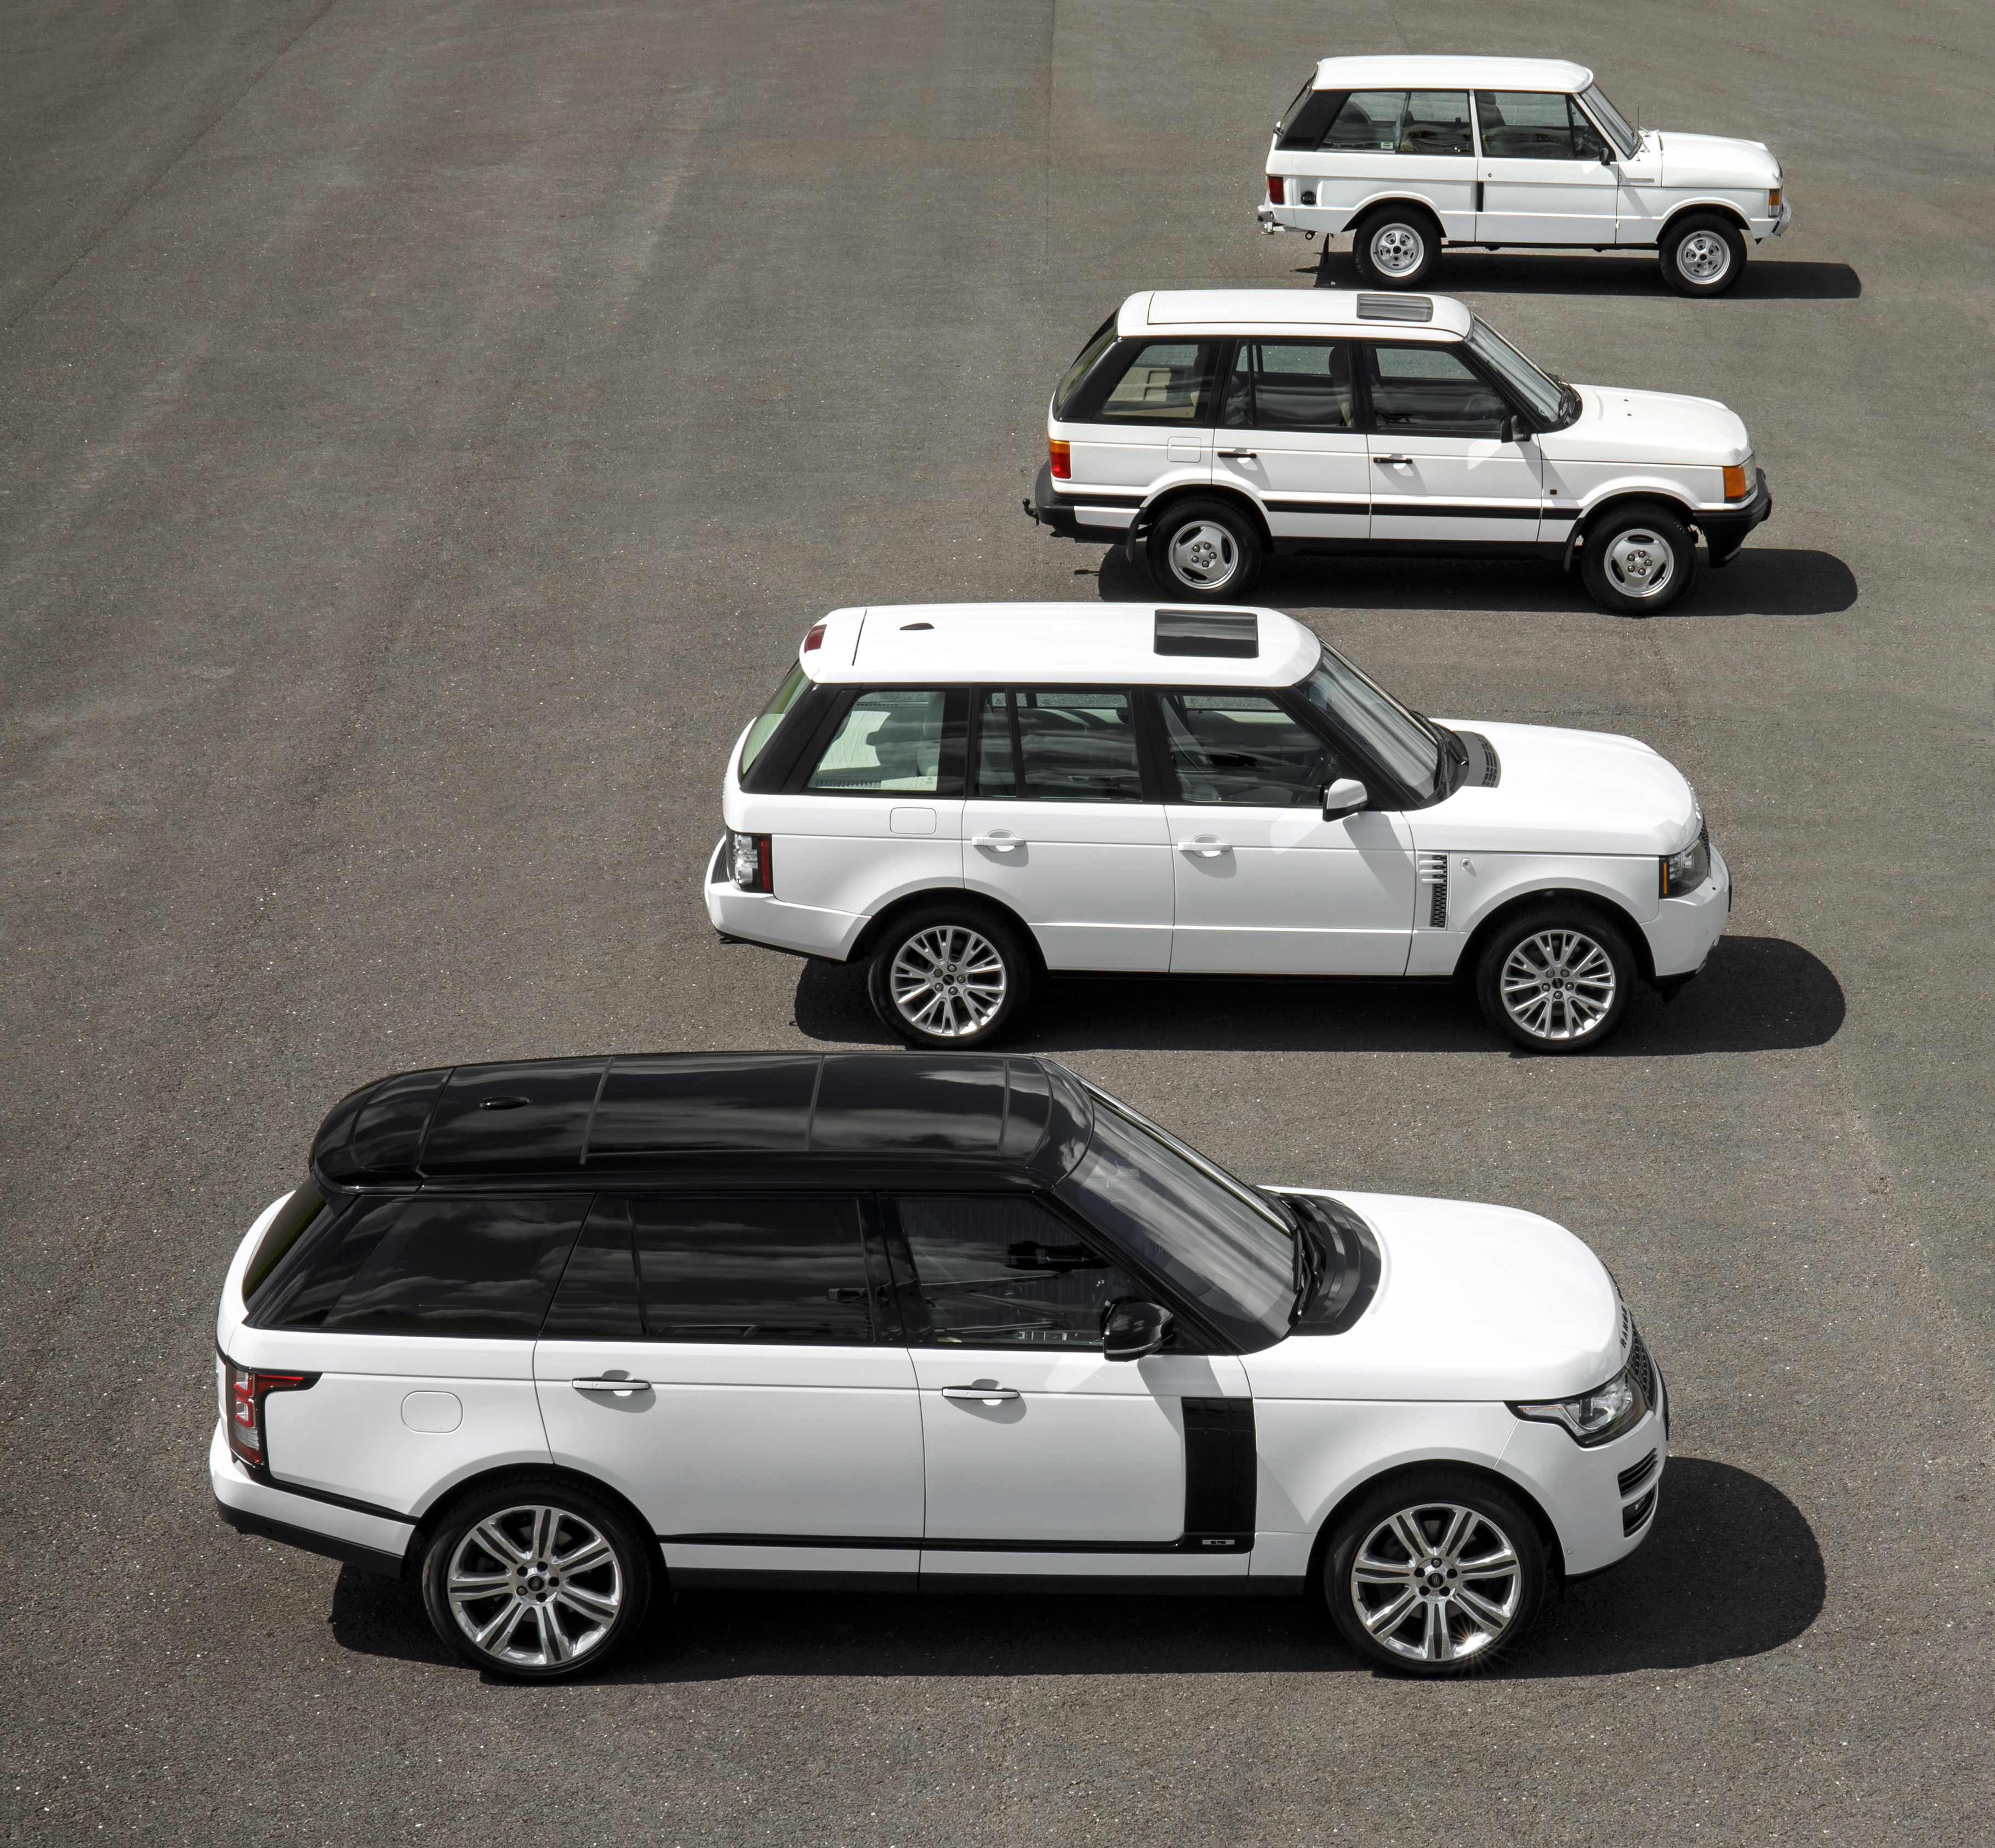 Duns Number Uk >> The Land Rover Show, Gaydon, 27th and 28th June 2015 :: The Dunsfold Collection